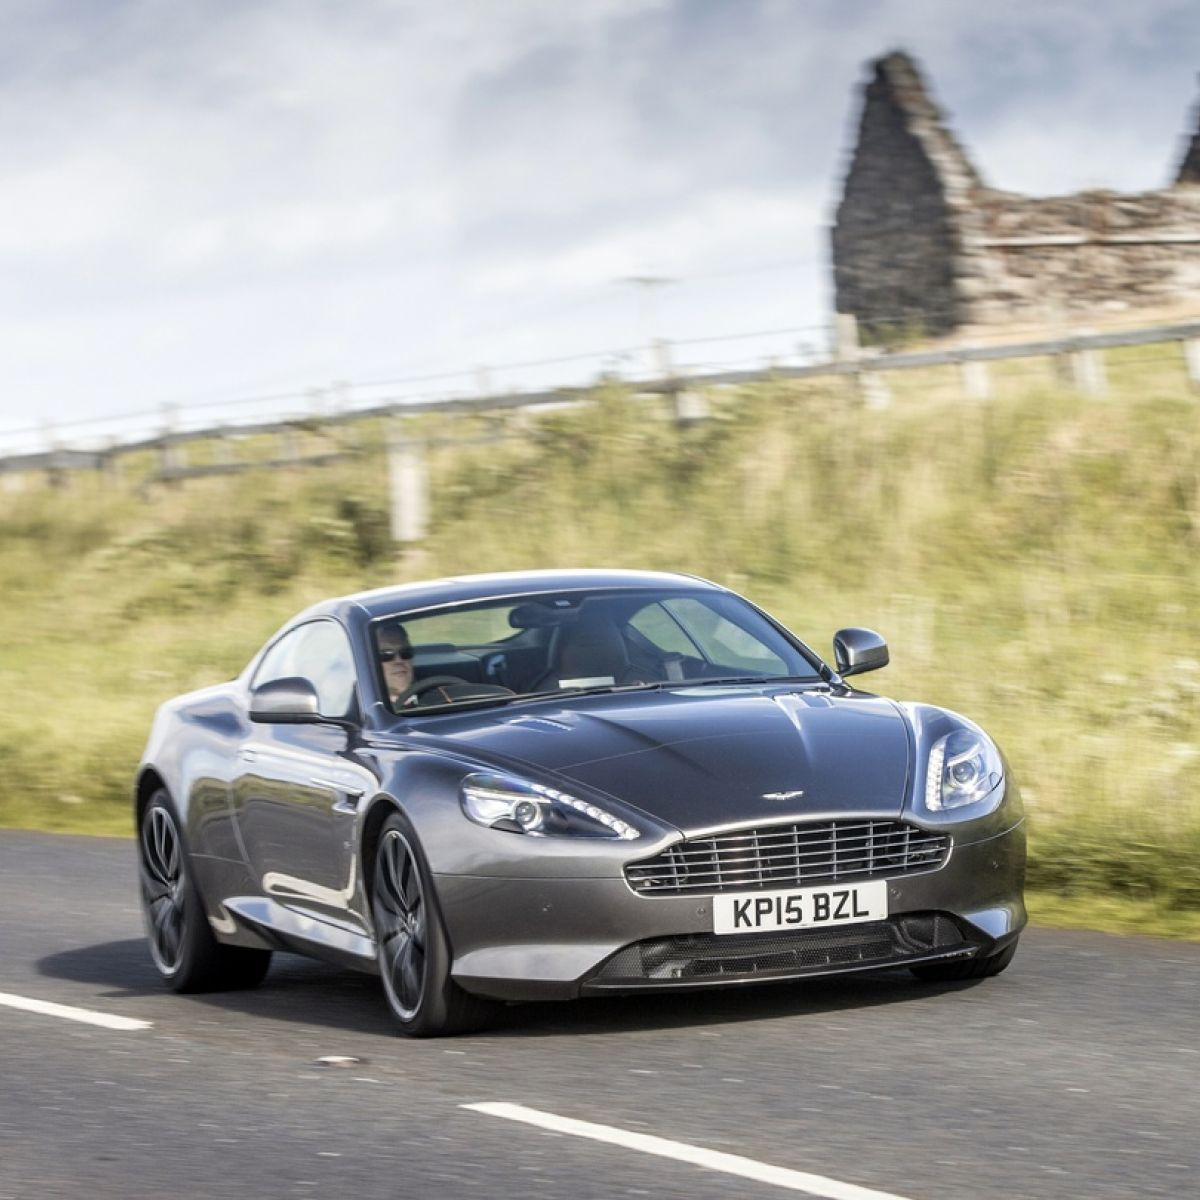 First Drive New Aston Martin Db9 Is Beautiful Powerful And A Little Impractical